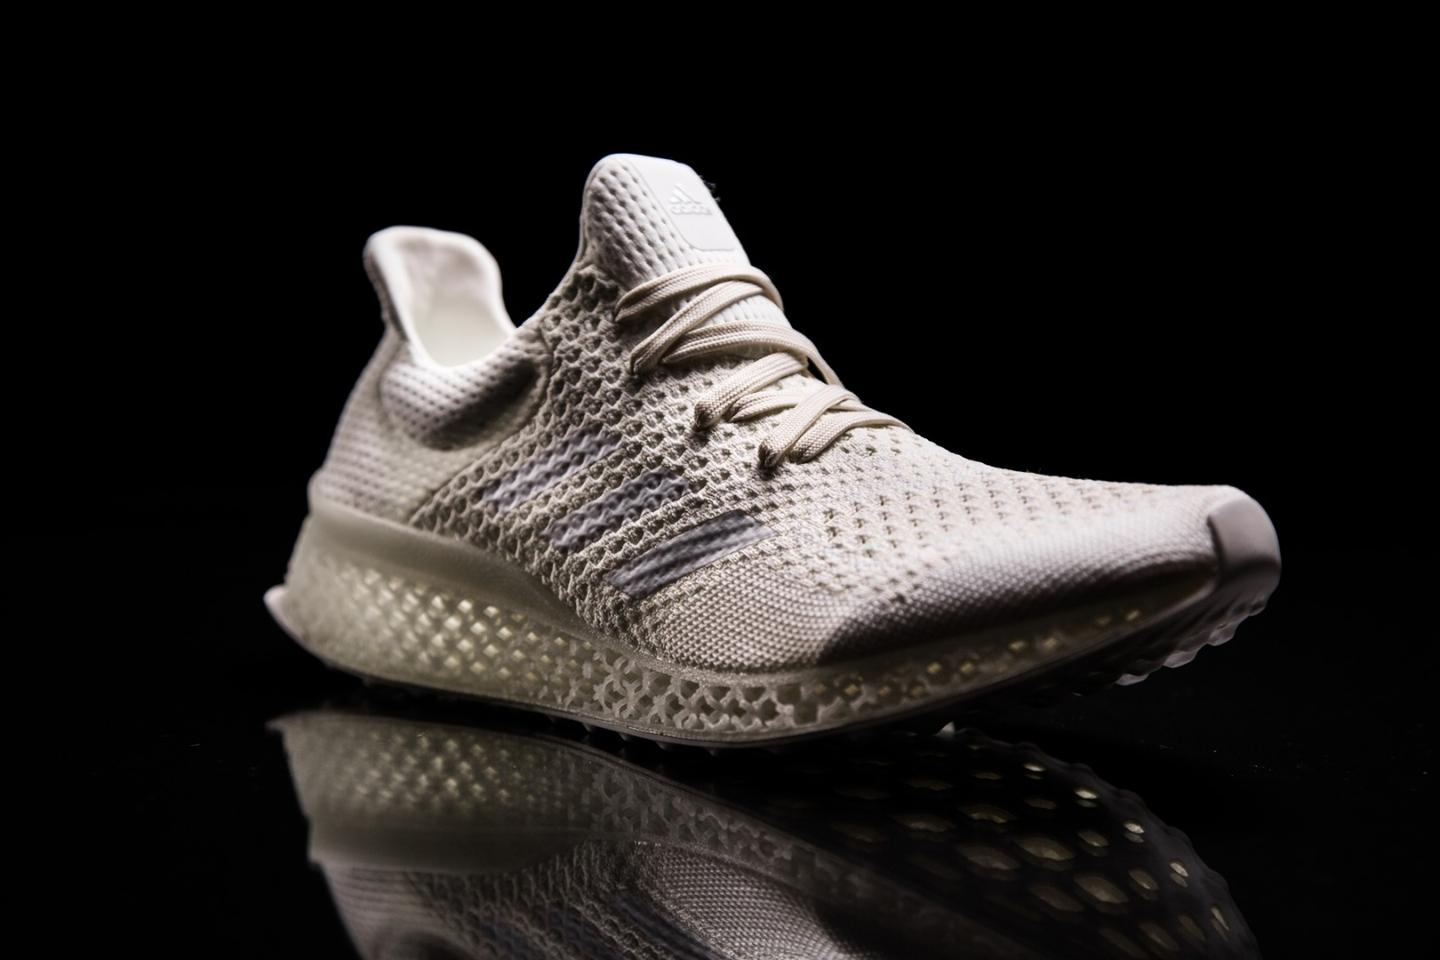 The Futurecraft 3D is designed to provide individualised support and cushioning for the wearer's feet